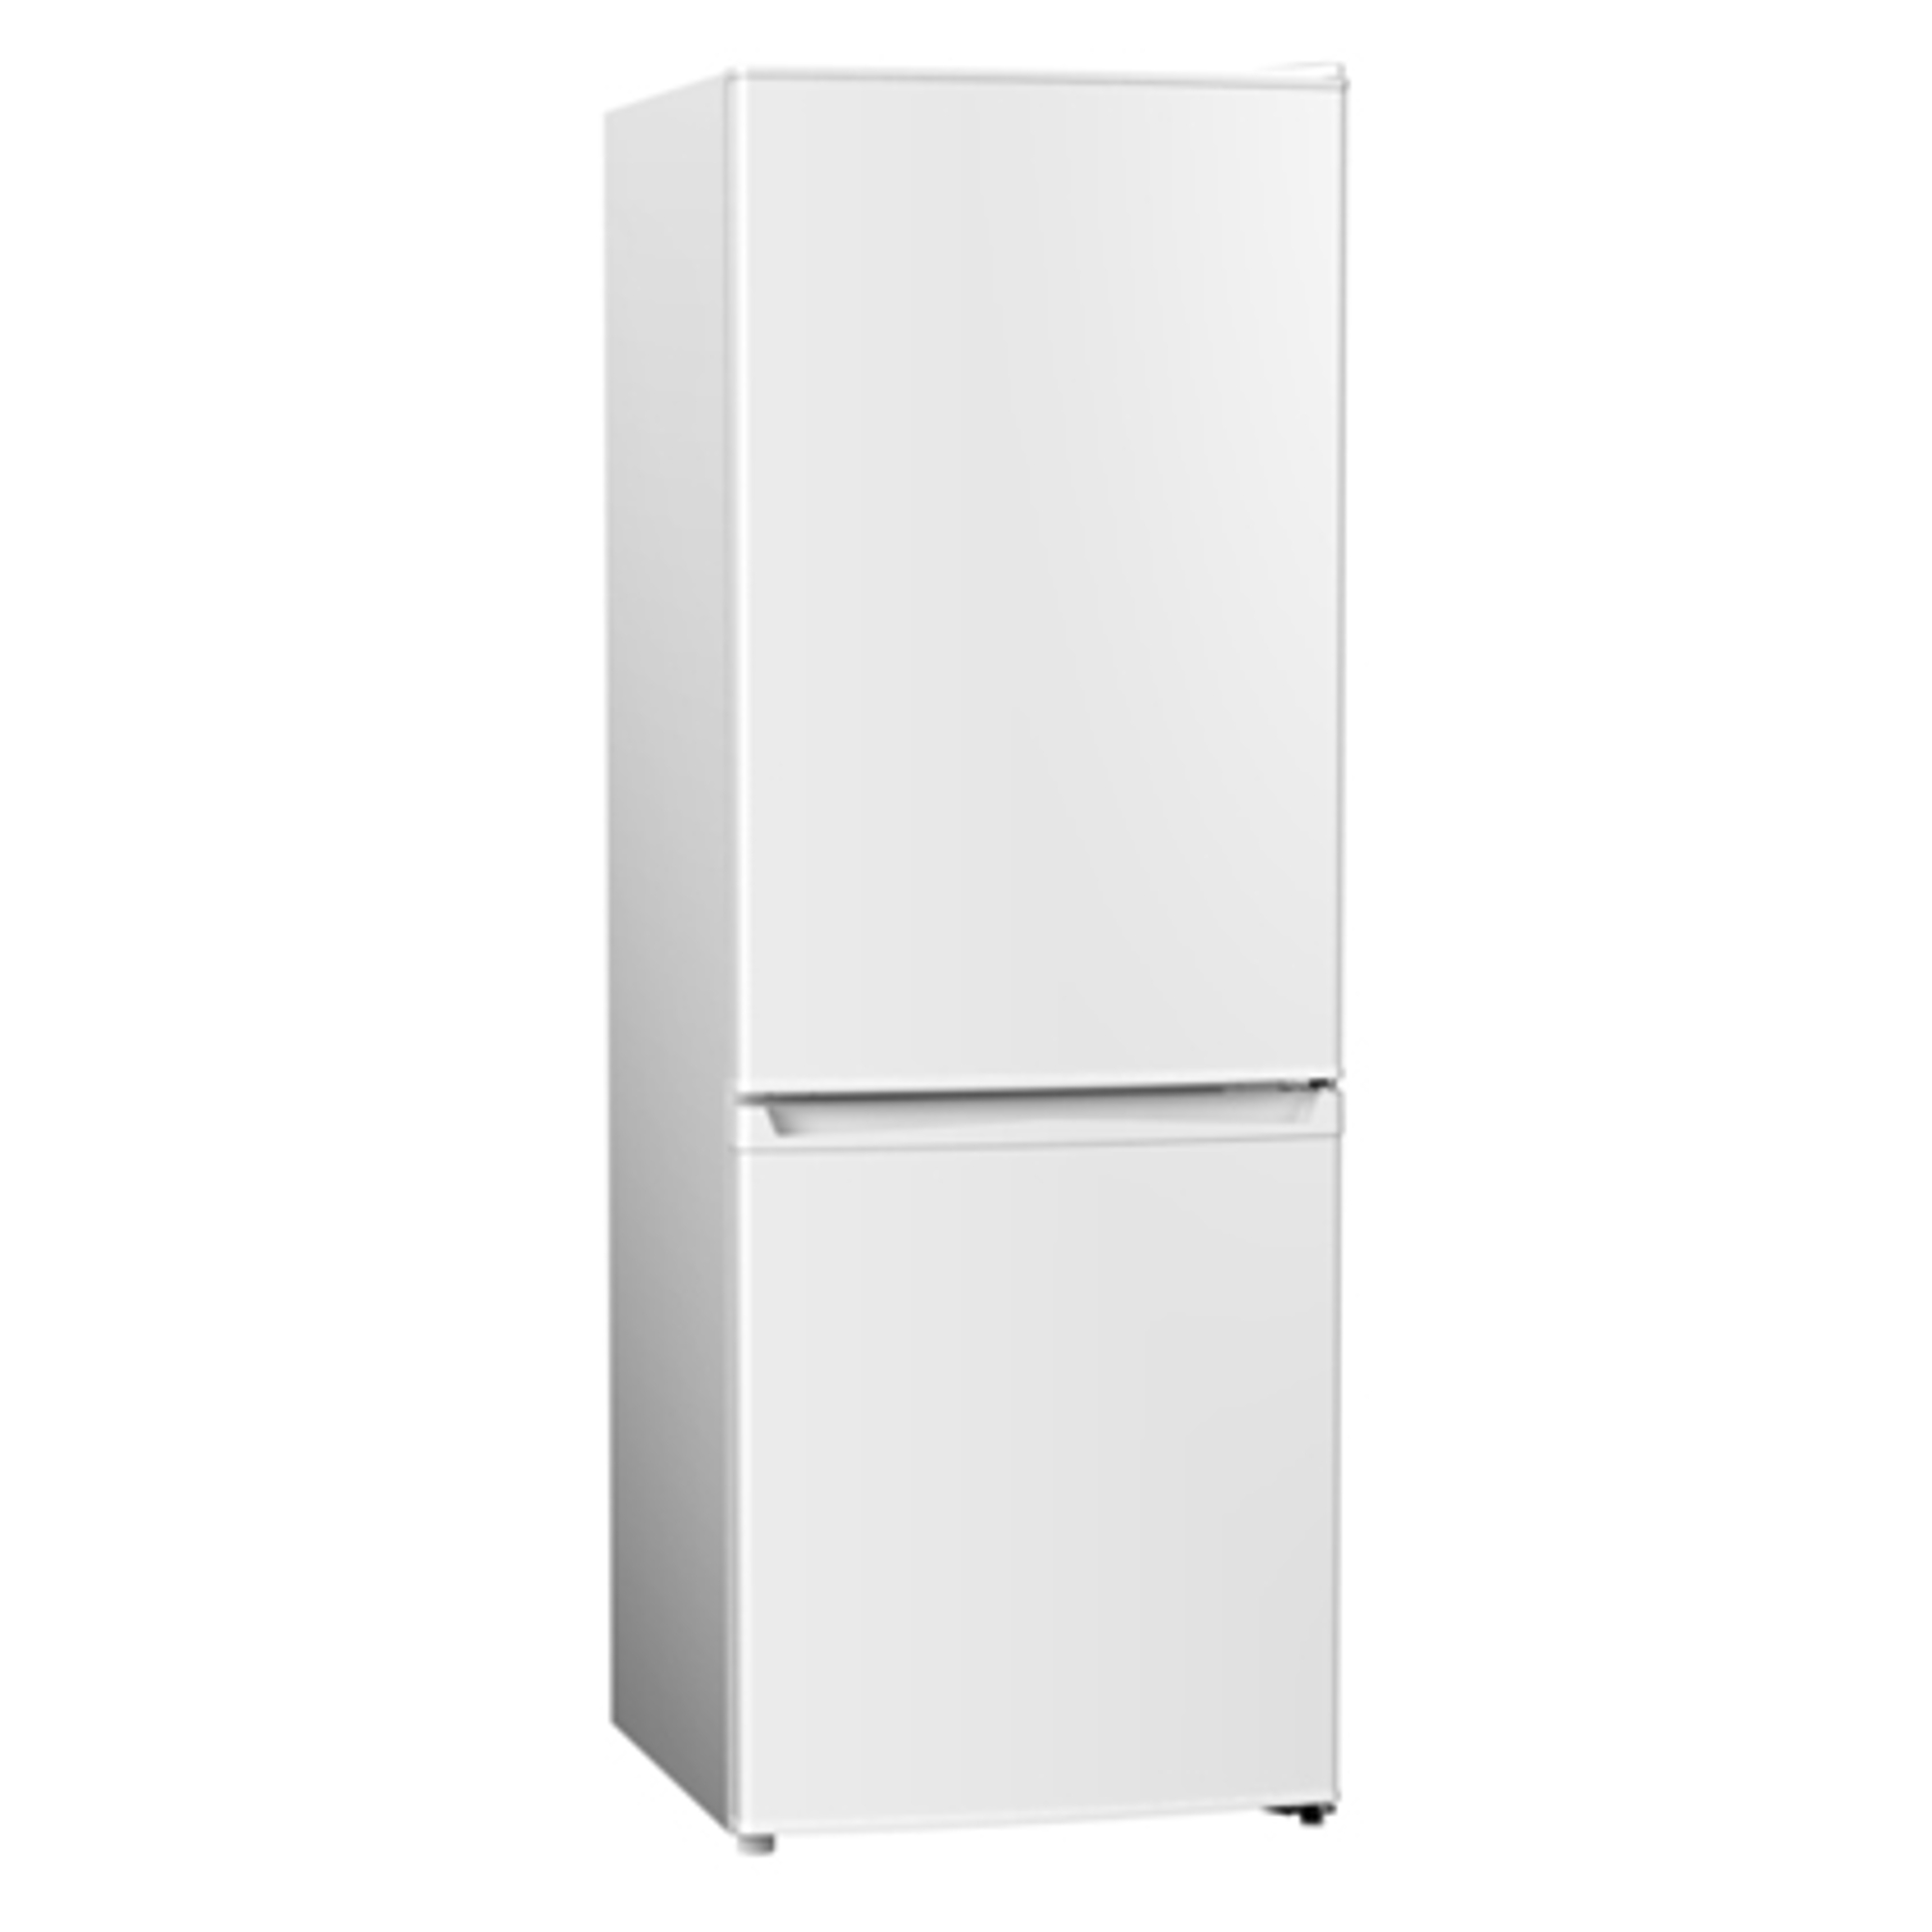 Haden Hk139w Fridge Freezer With Auto Fridge Defrost Hughes